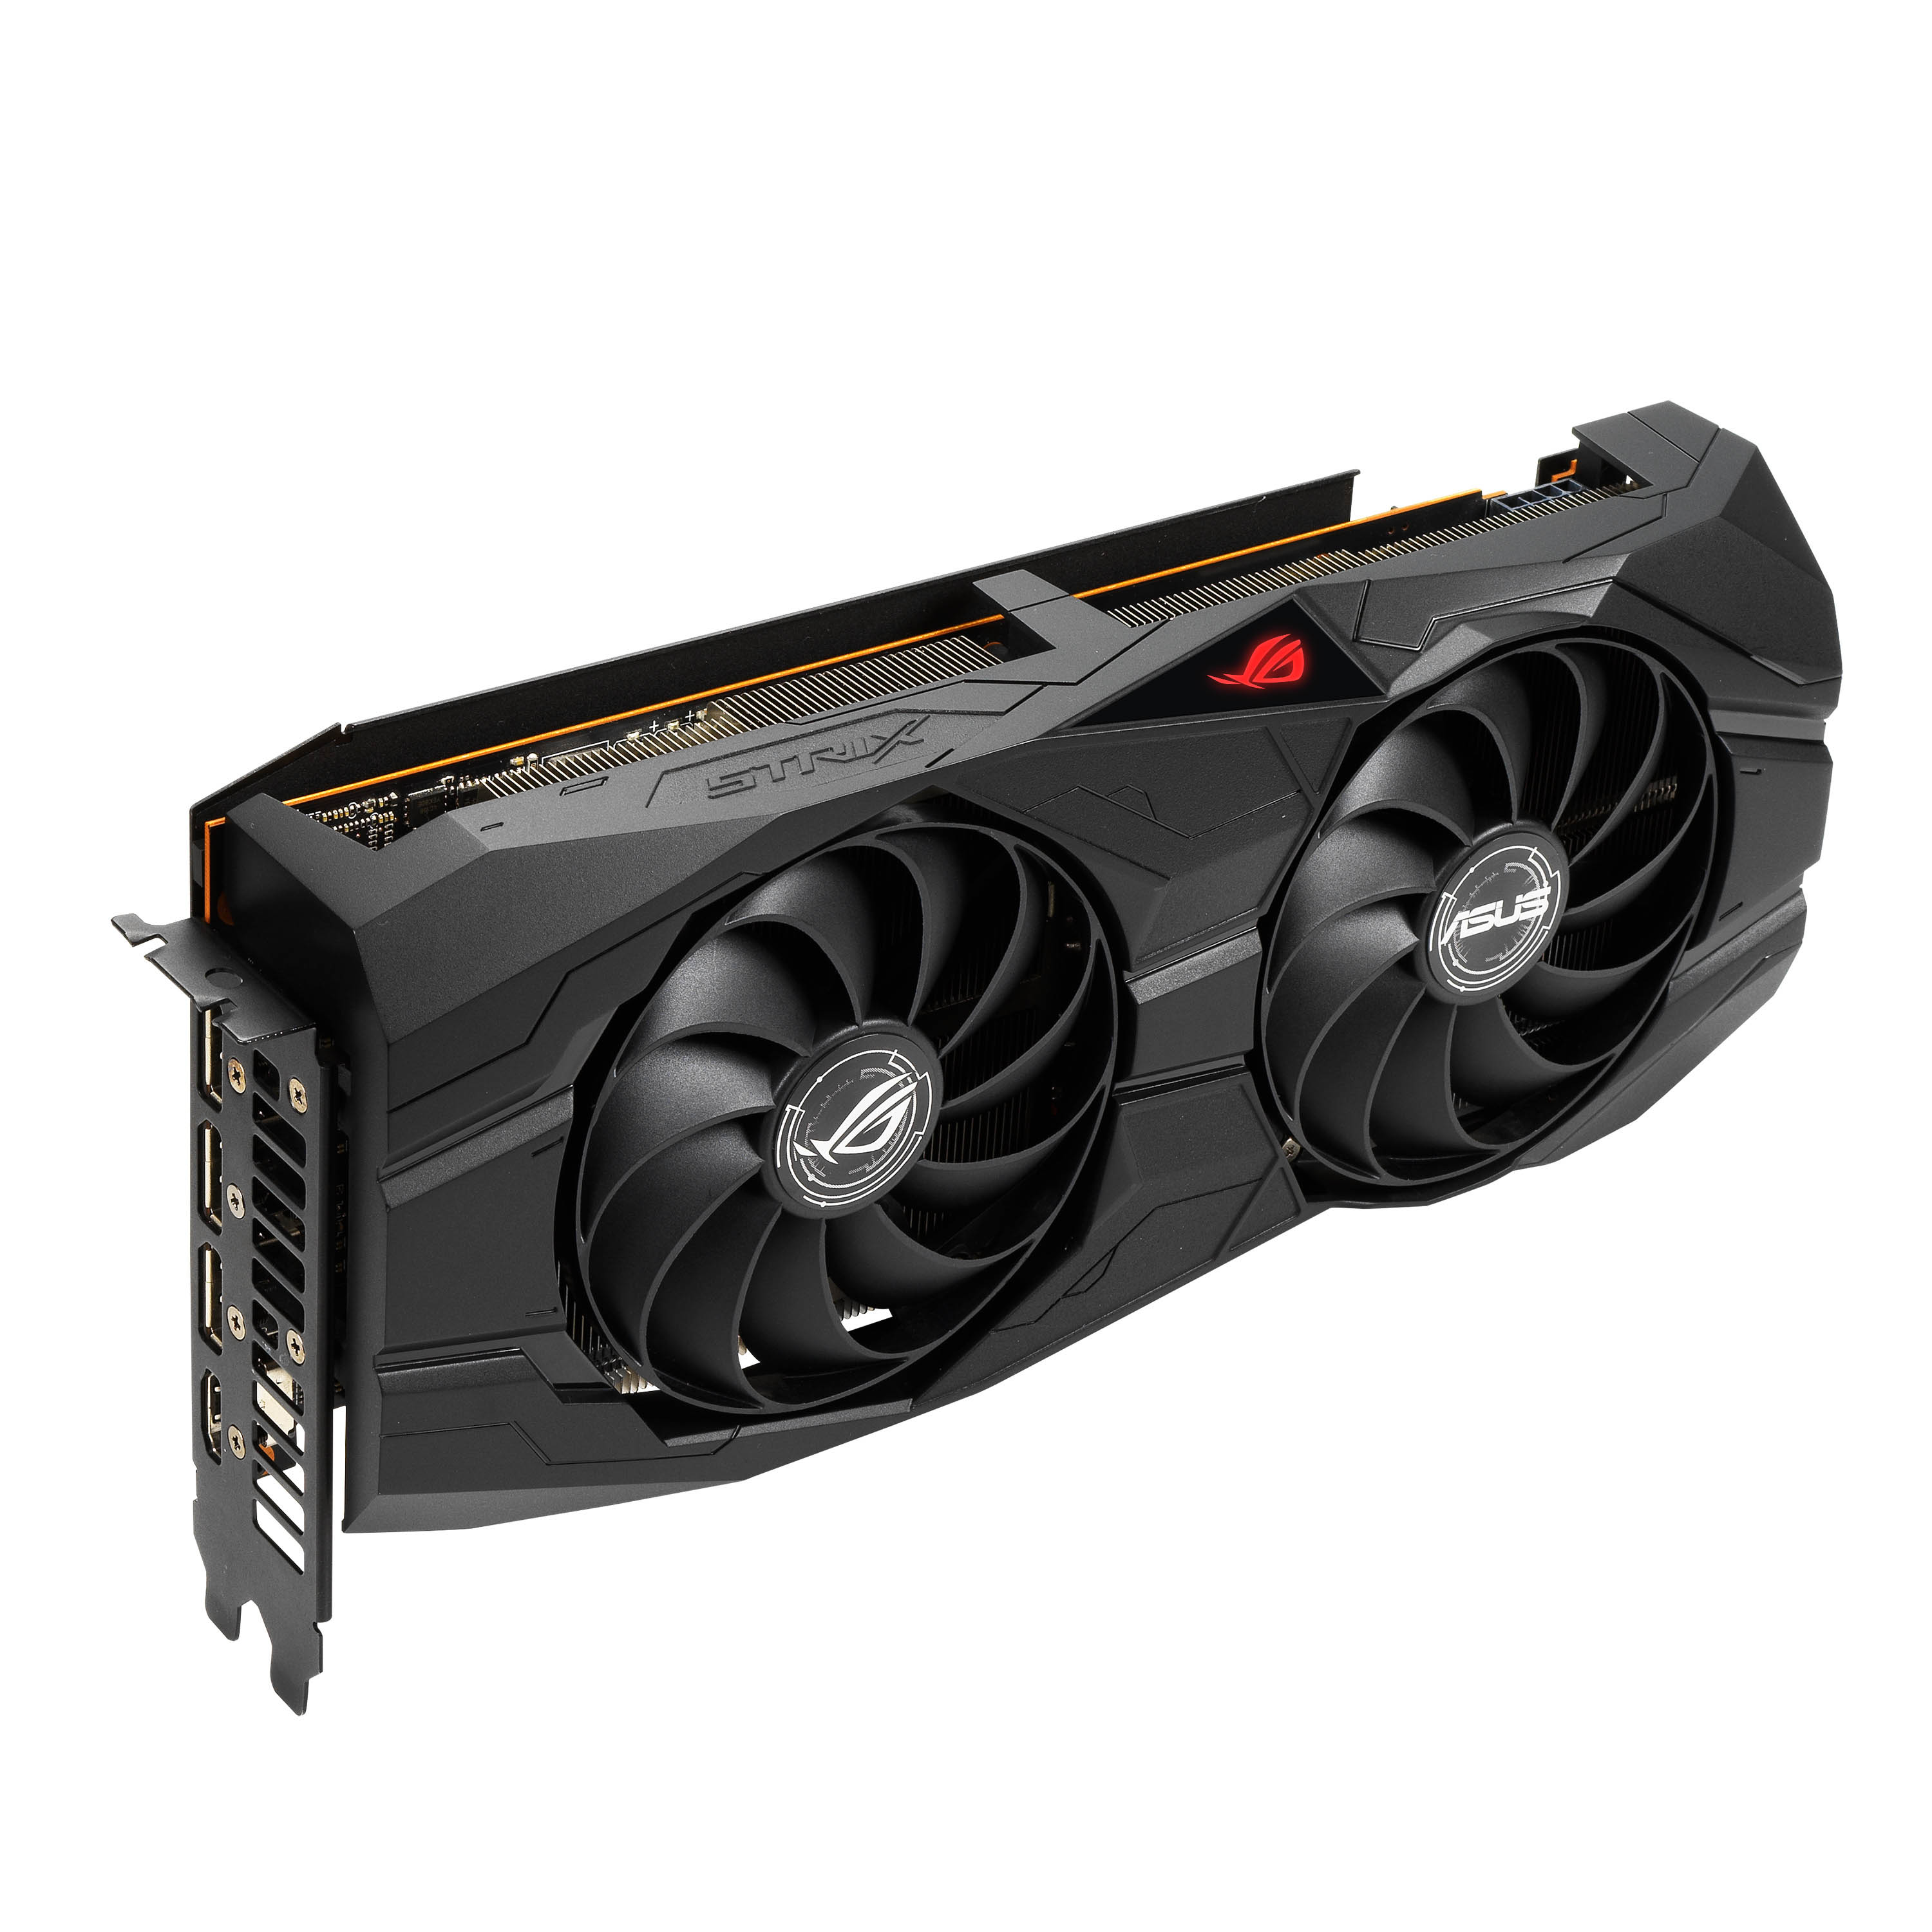 ASUS annuncia le schede video ROG Strix e Dual Radeon RX 5500 XT 5